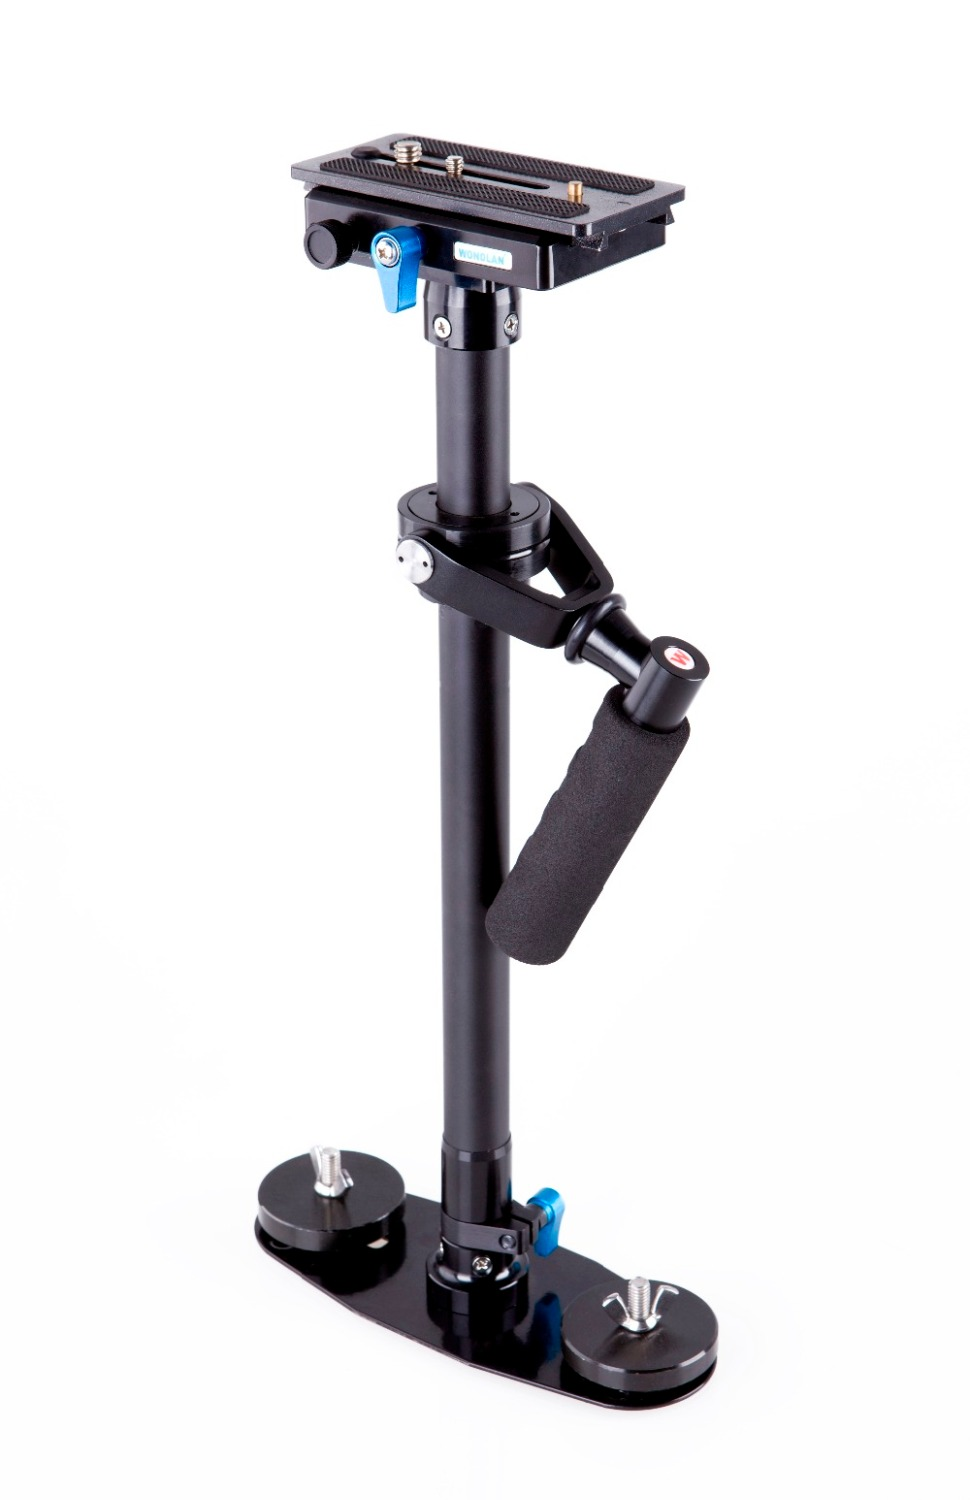 Stabilizer Steadicam Load 2.5KG Magic Mini Handheld Steadycam DSLR Camera Stabilizer for SONY/CANON free shipping